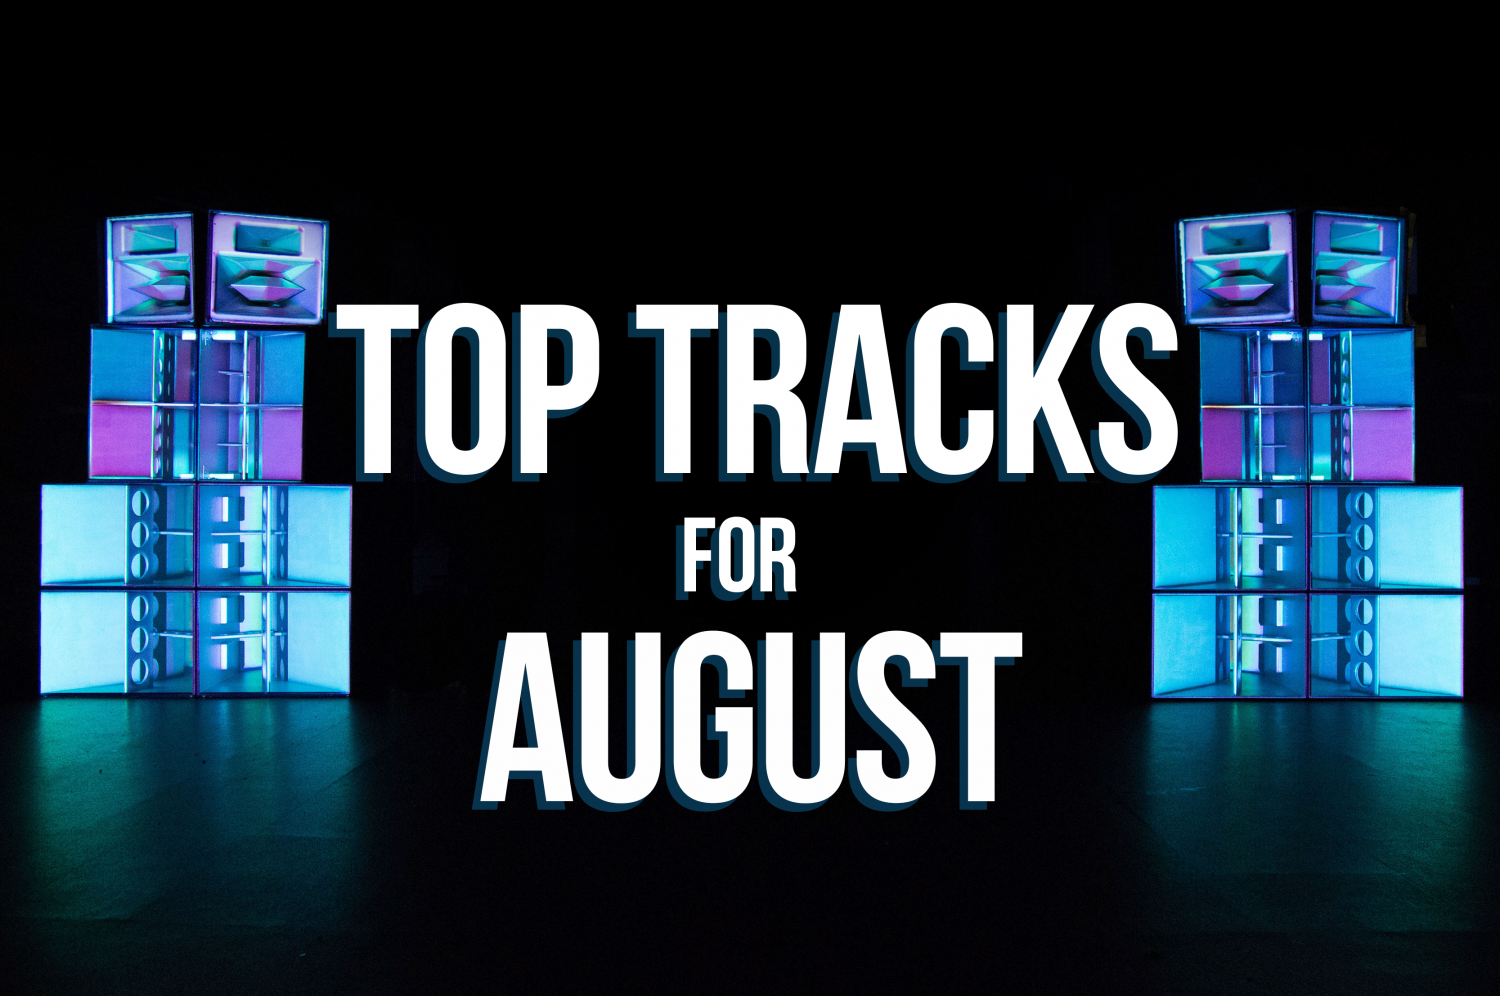 Hot new tracks for August 2019